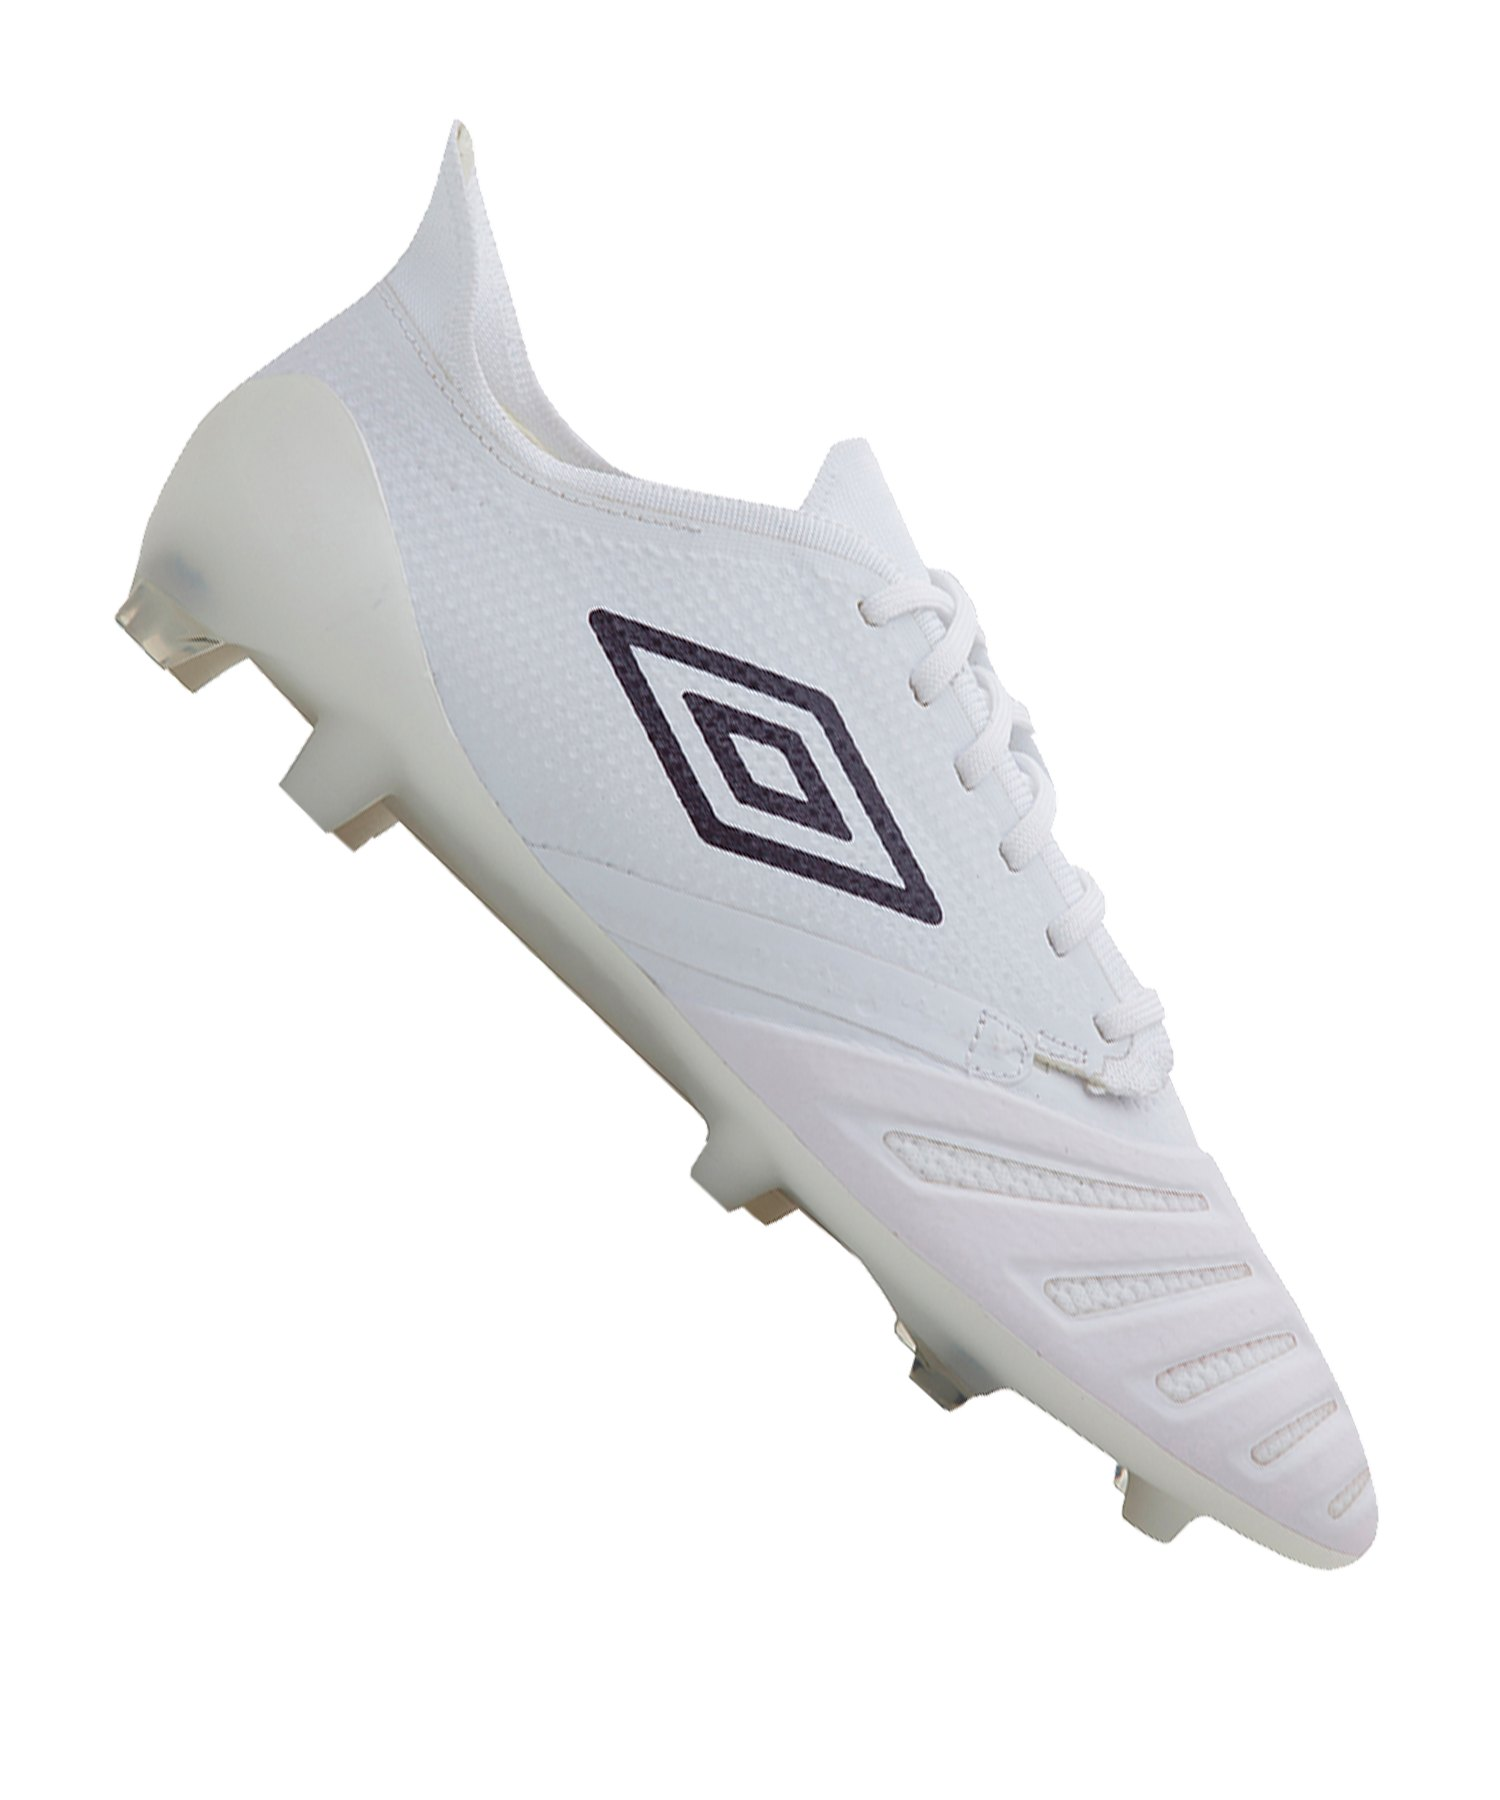 Umbro UX Accuro III Pro FG Weiss FHPV - Weiss